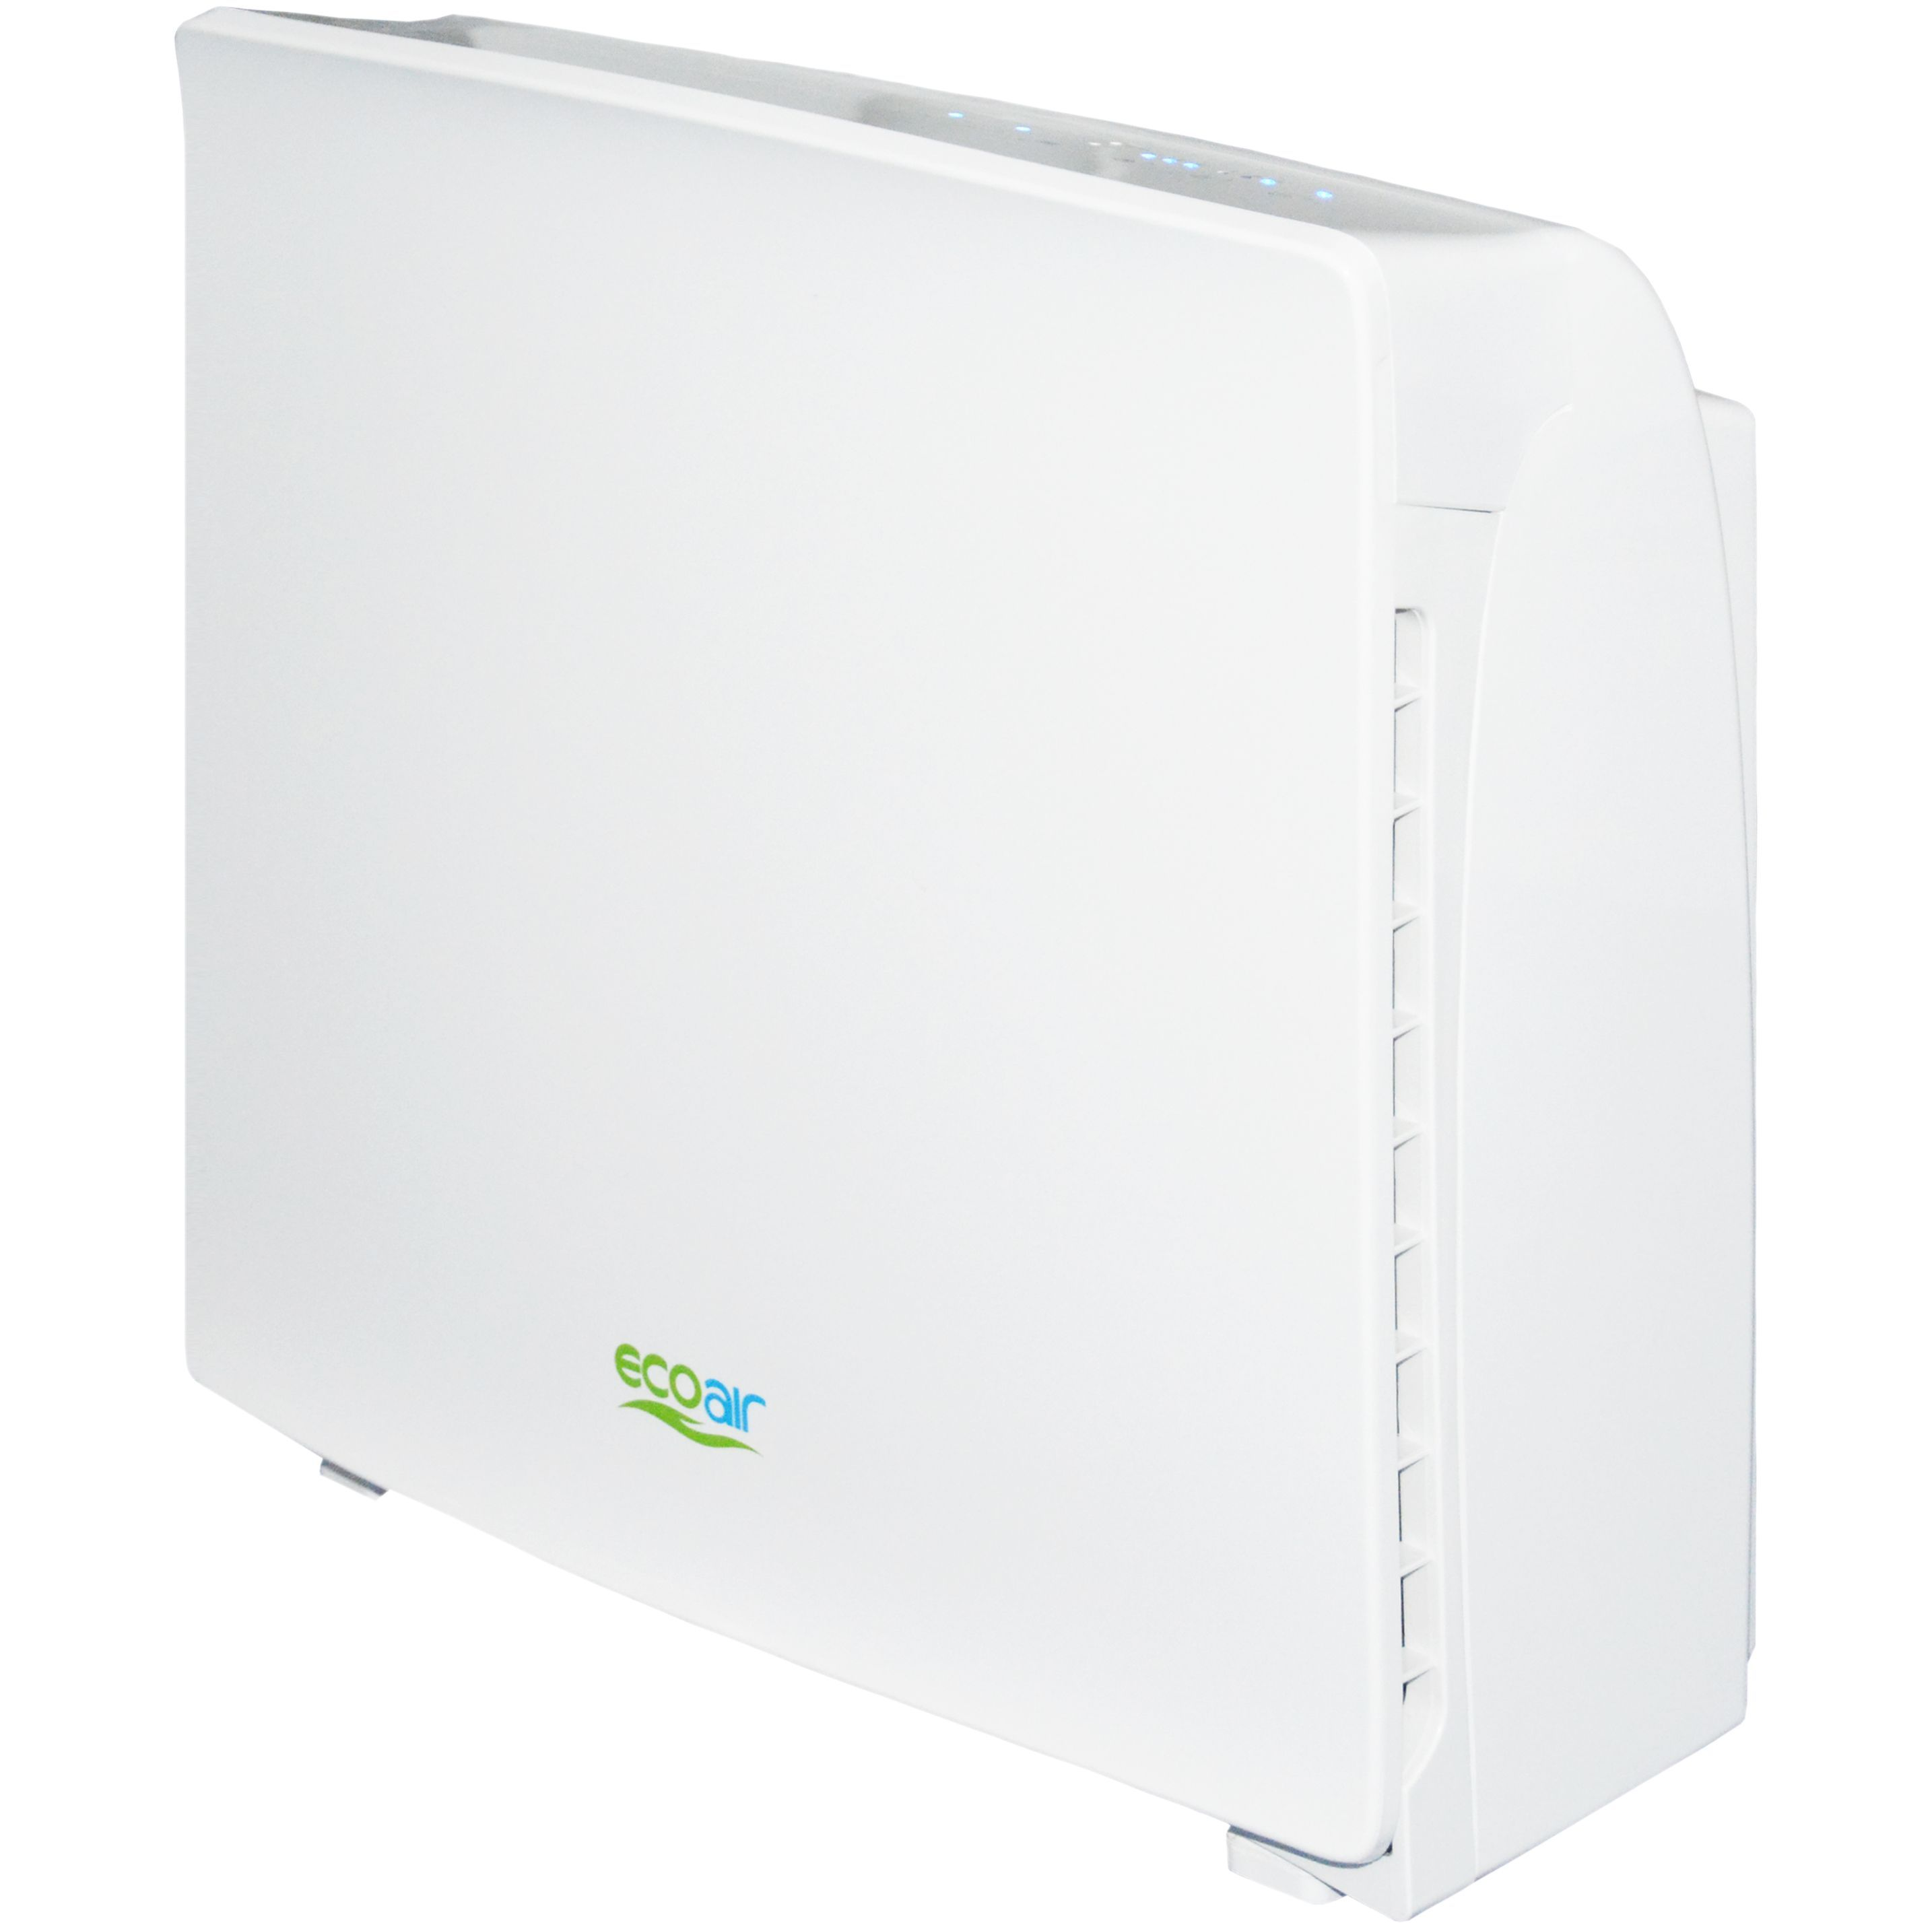 EcoAir Air Purifier £179.99 (With images) Hepa air